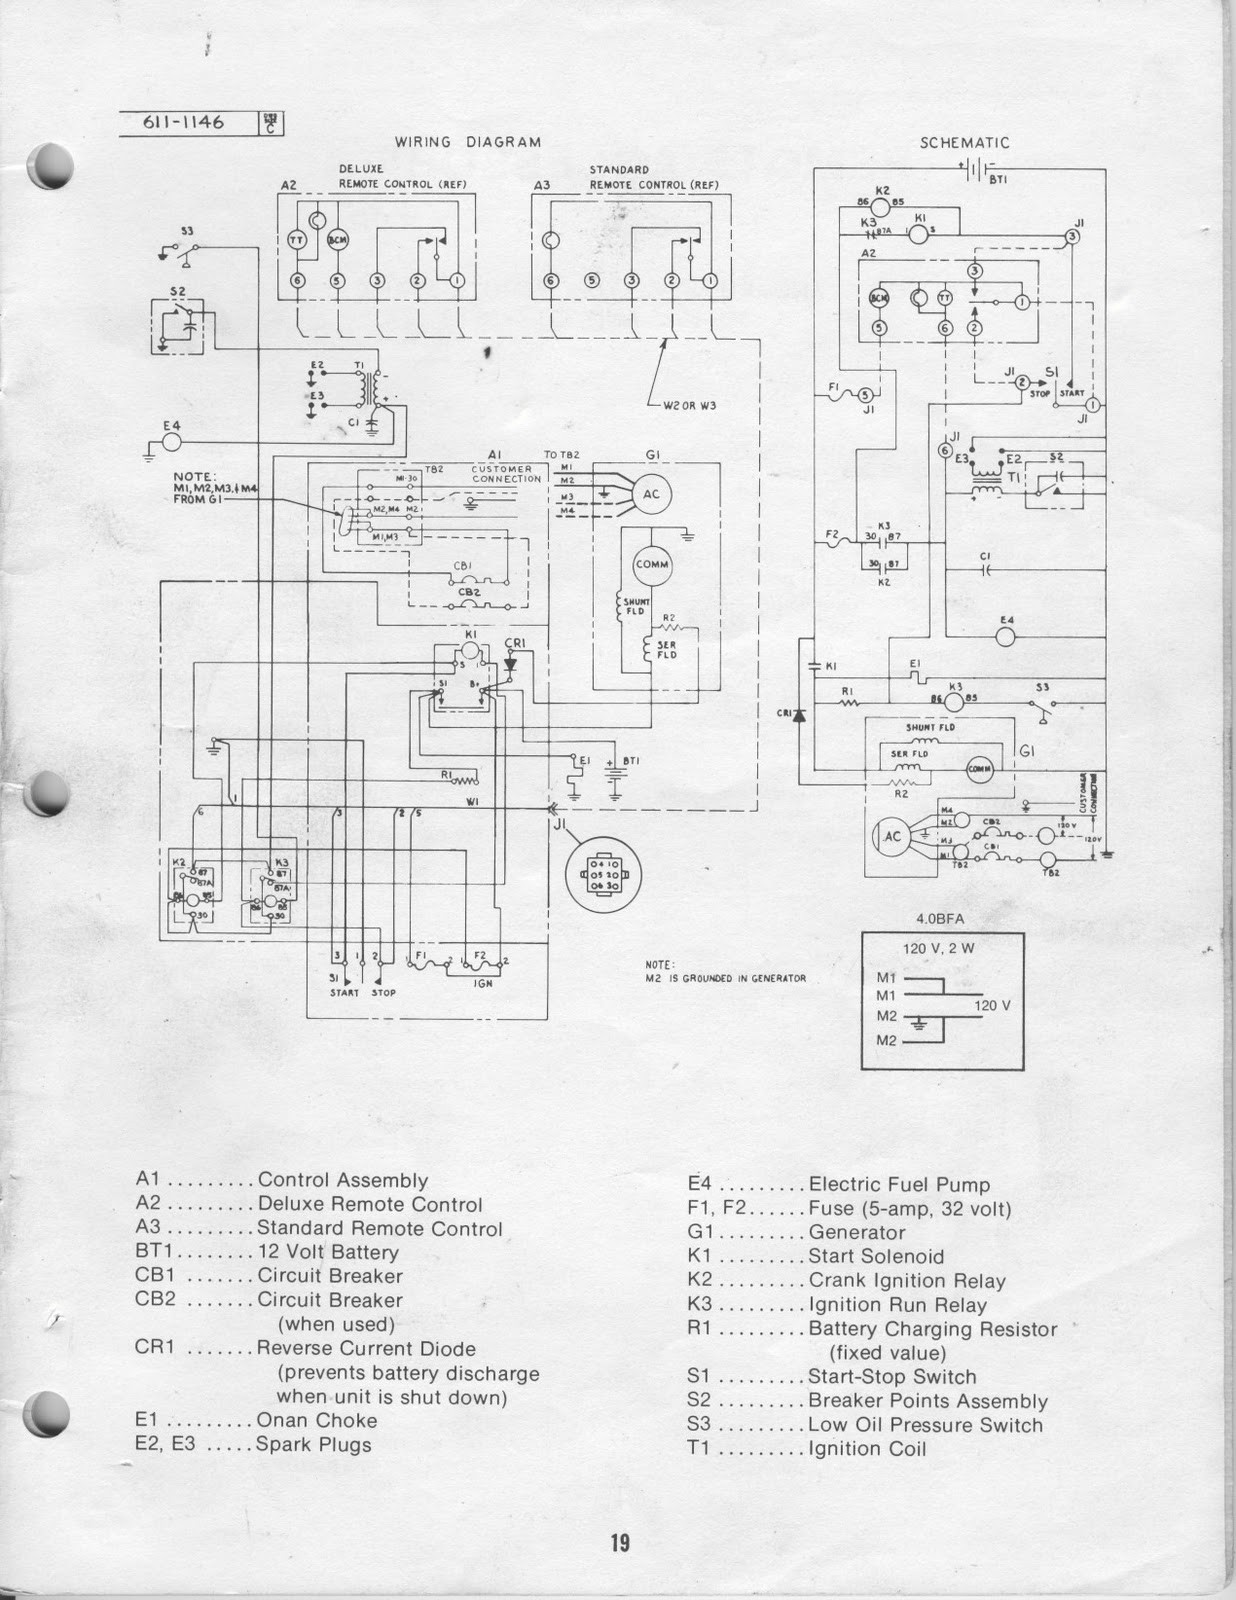 Wiring Diagram For 4500 Bgd Onan Generator Wiring Diagrams Schematics Onan  4.5 Bgd Emerald Generator Wiring Diagram